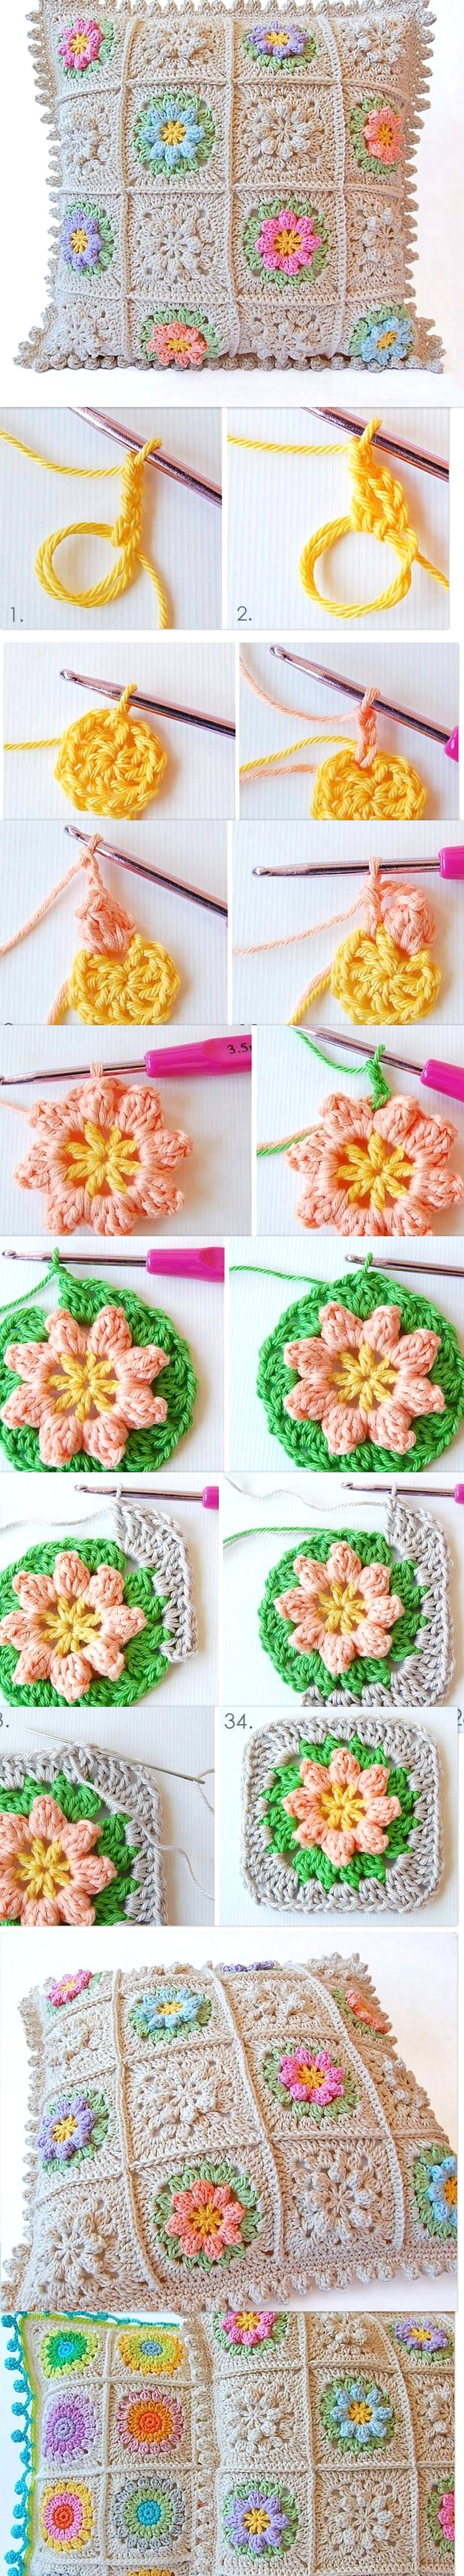 diy-crochet-cushion-cover